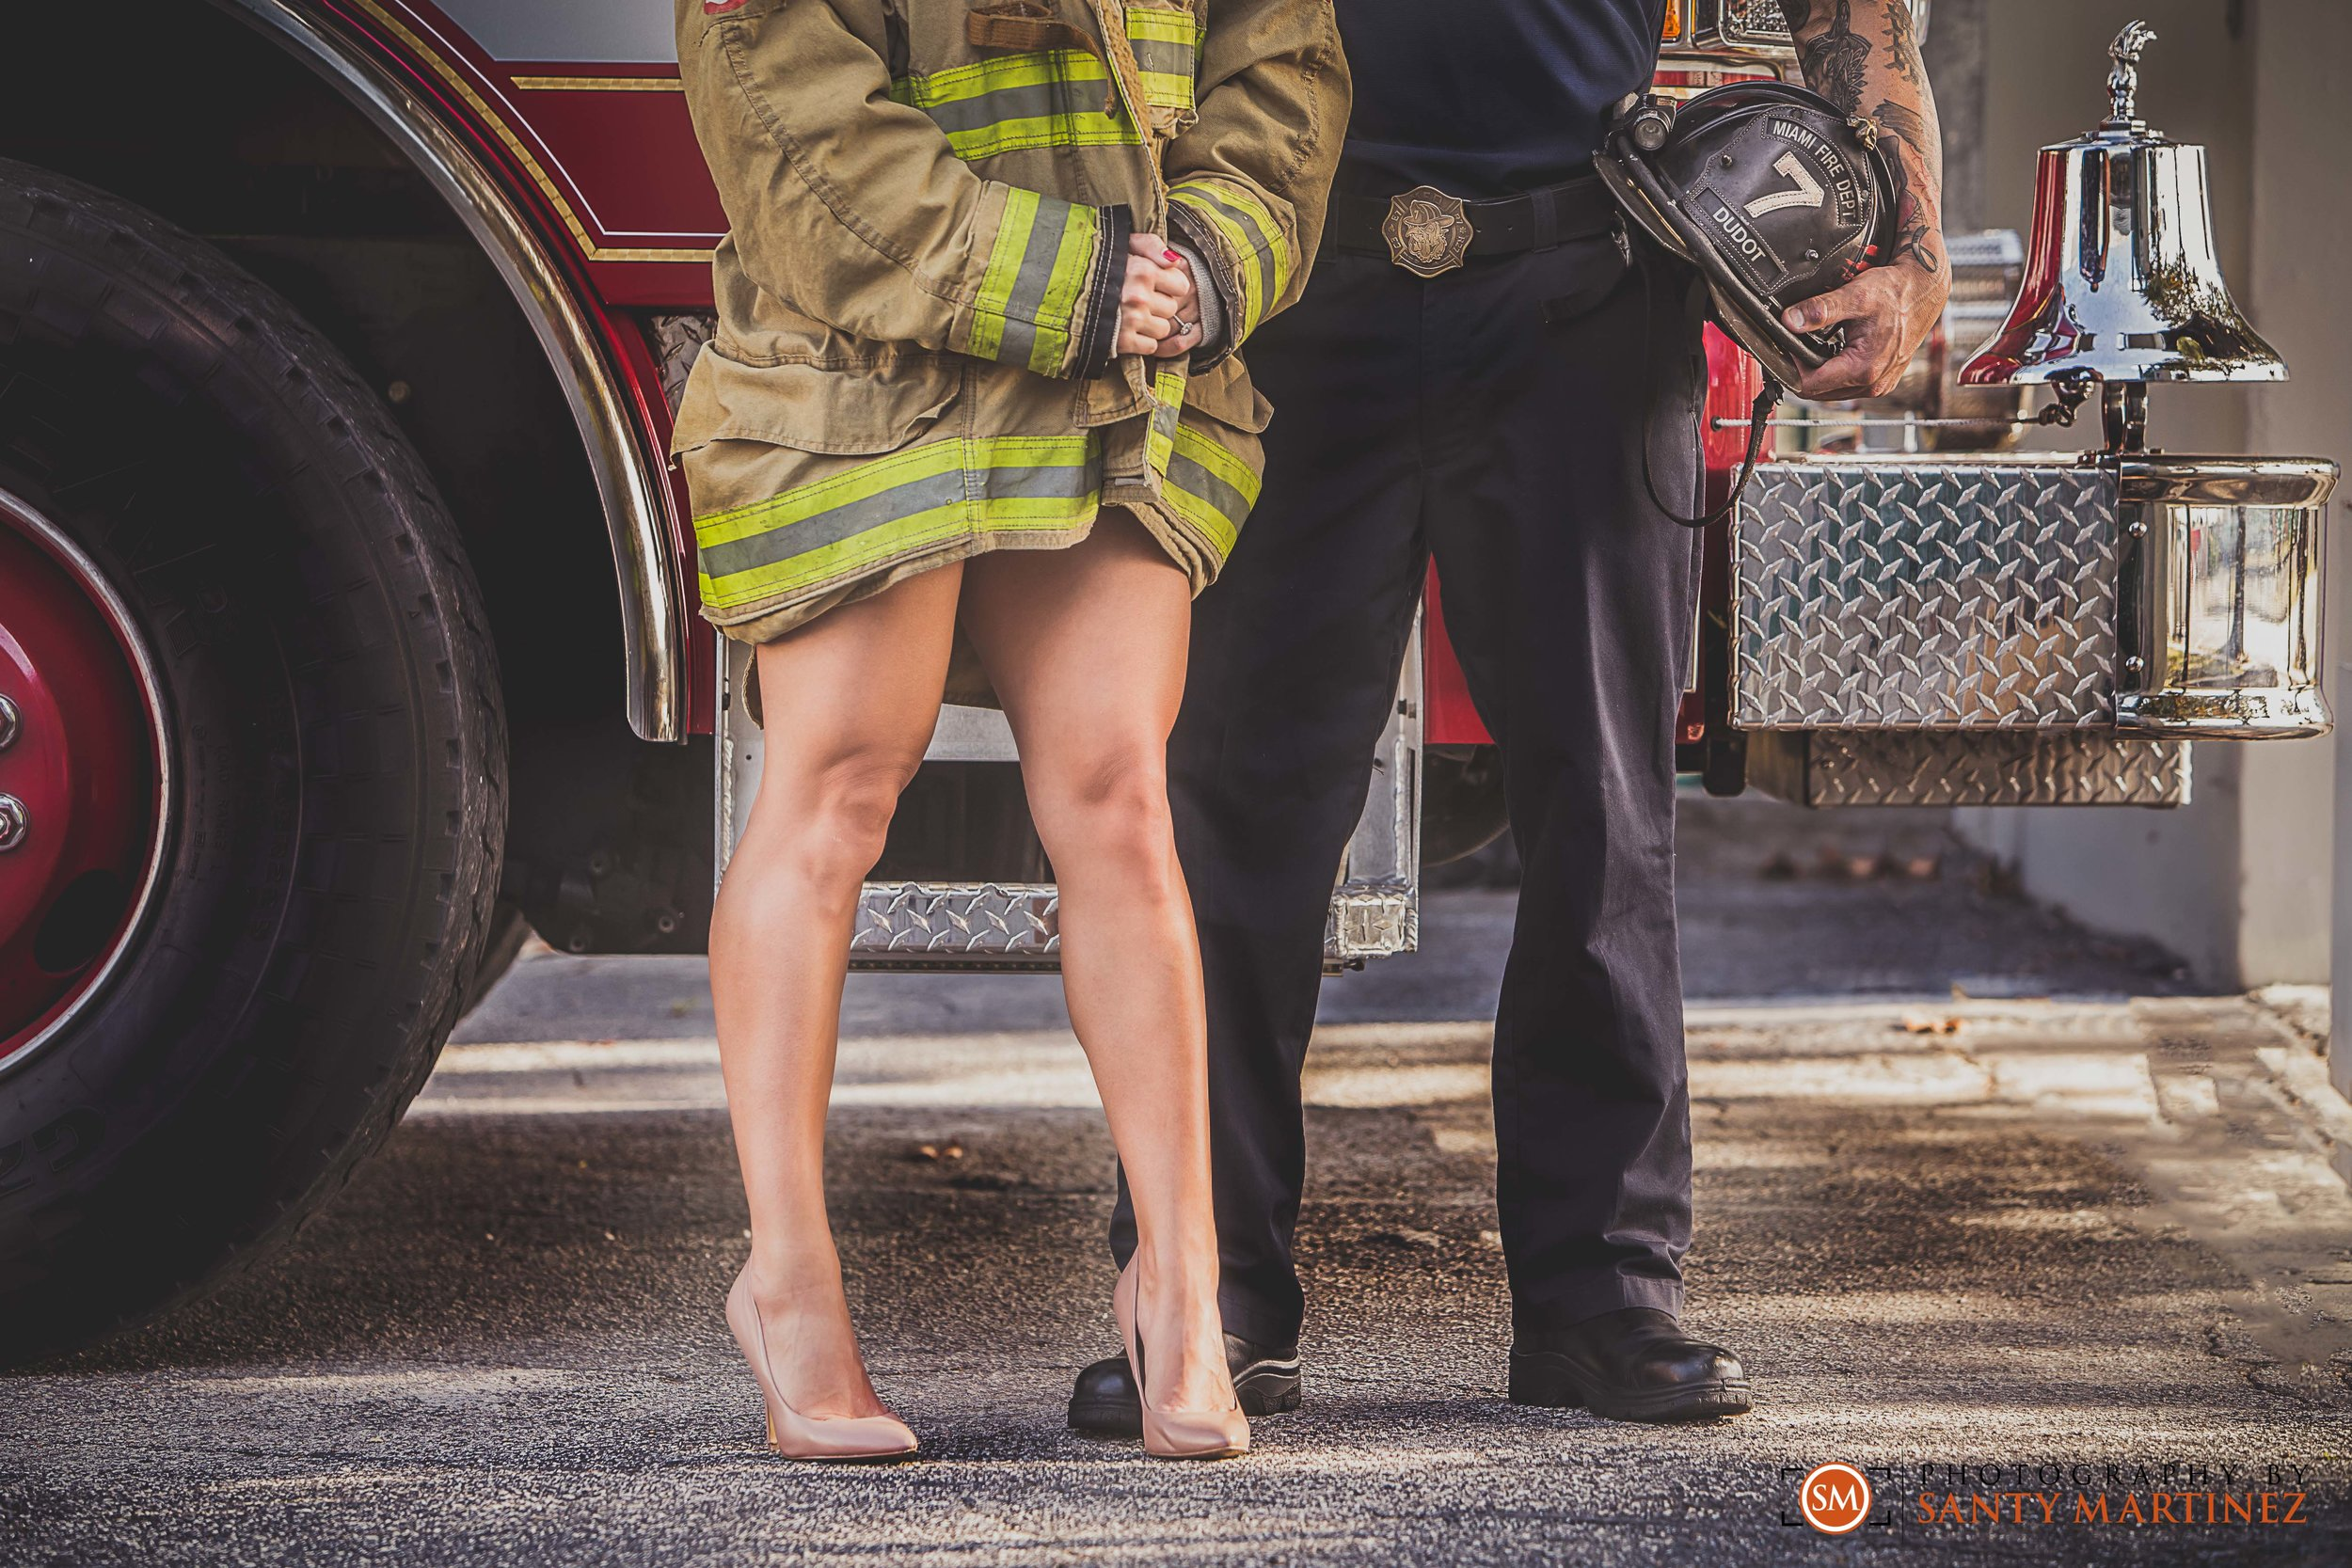 Miami Firefighter Engagement Session - Photography by Santy Martinez-12.jpg